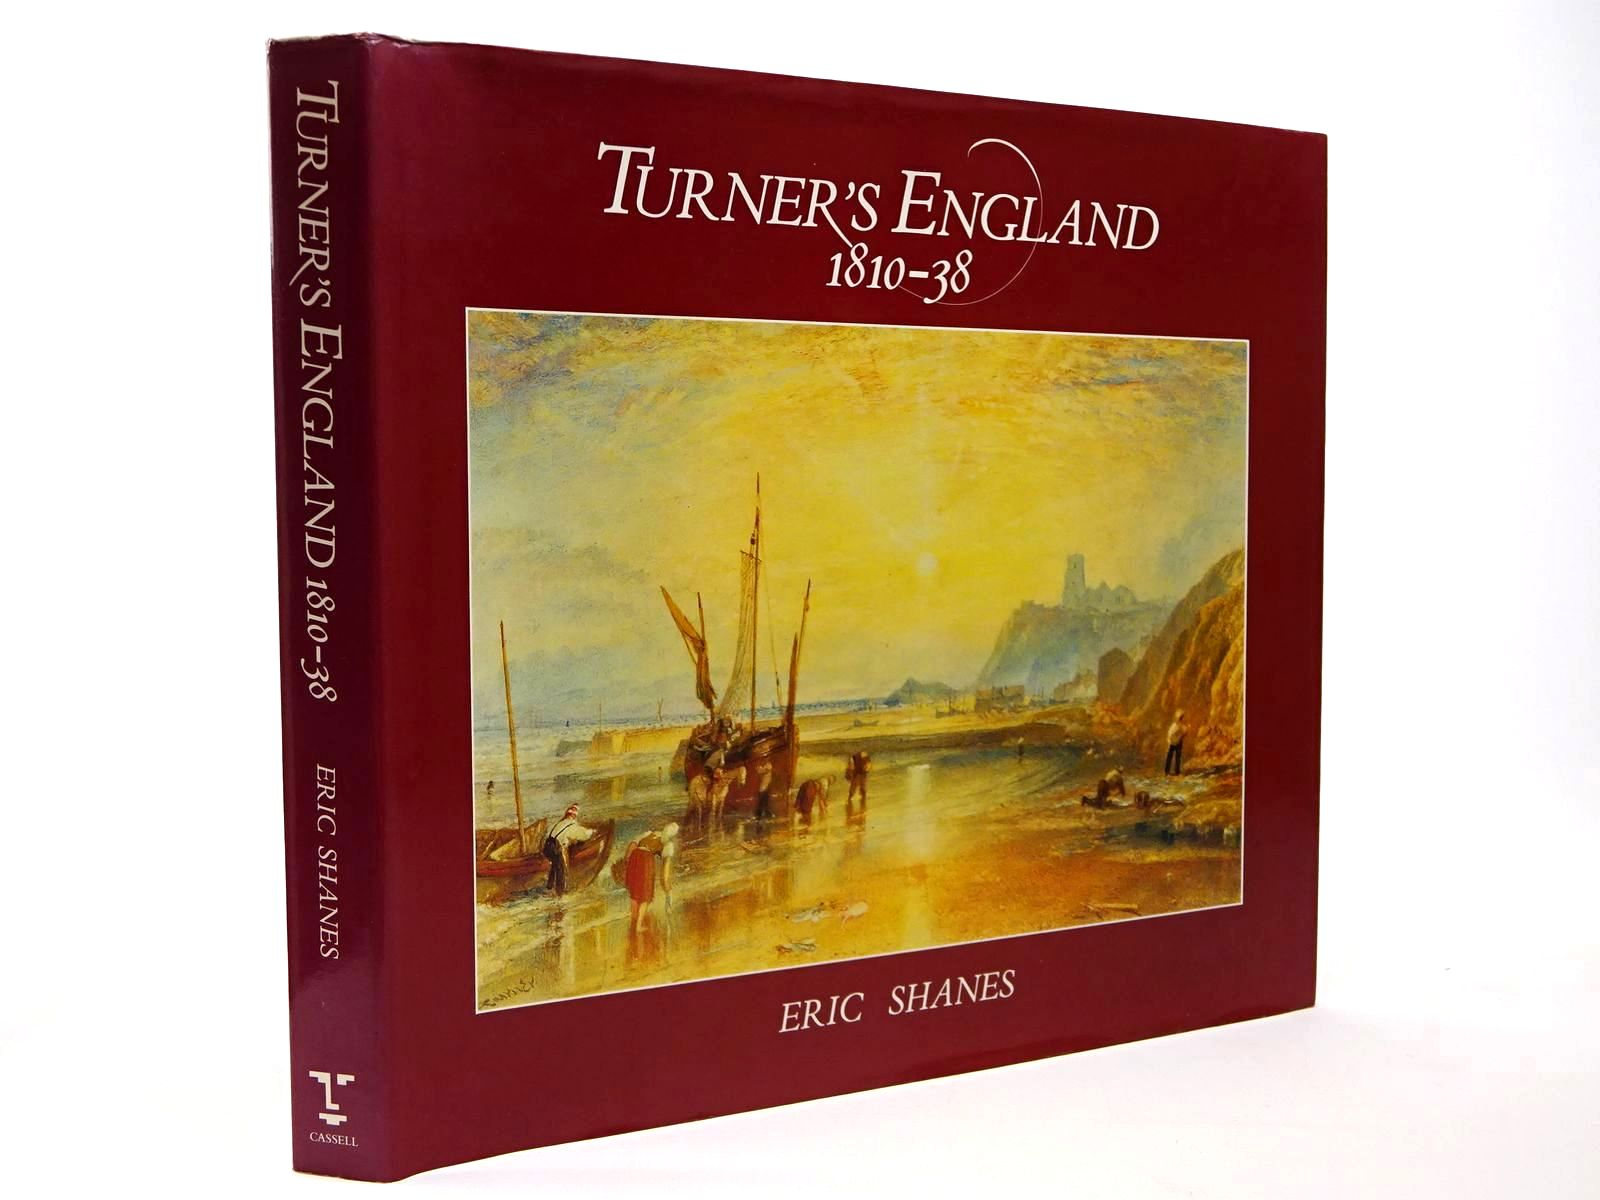 Photo of TURNER'S ENGLAND 1810-38 written by Shanes, Eric illustrated by Turner, J.M.W. published by Cassell (STOCK CODE: 2129868)  for sale by Stella & Rose's Books